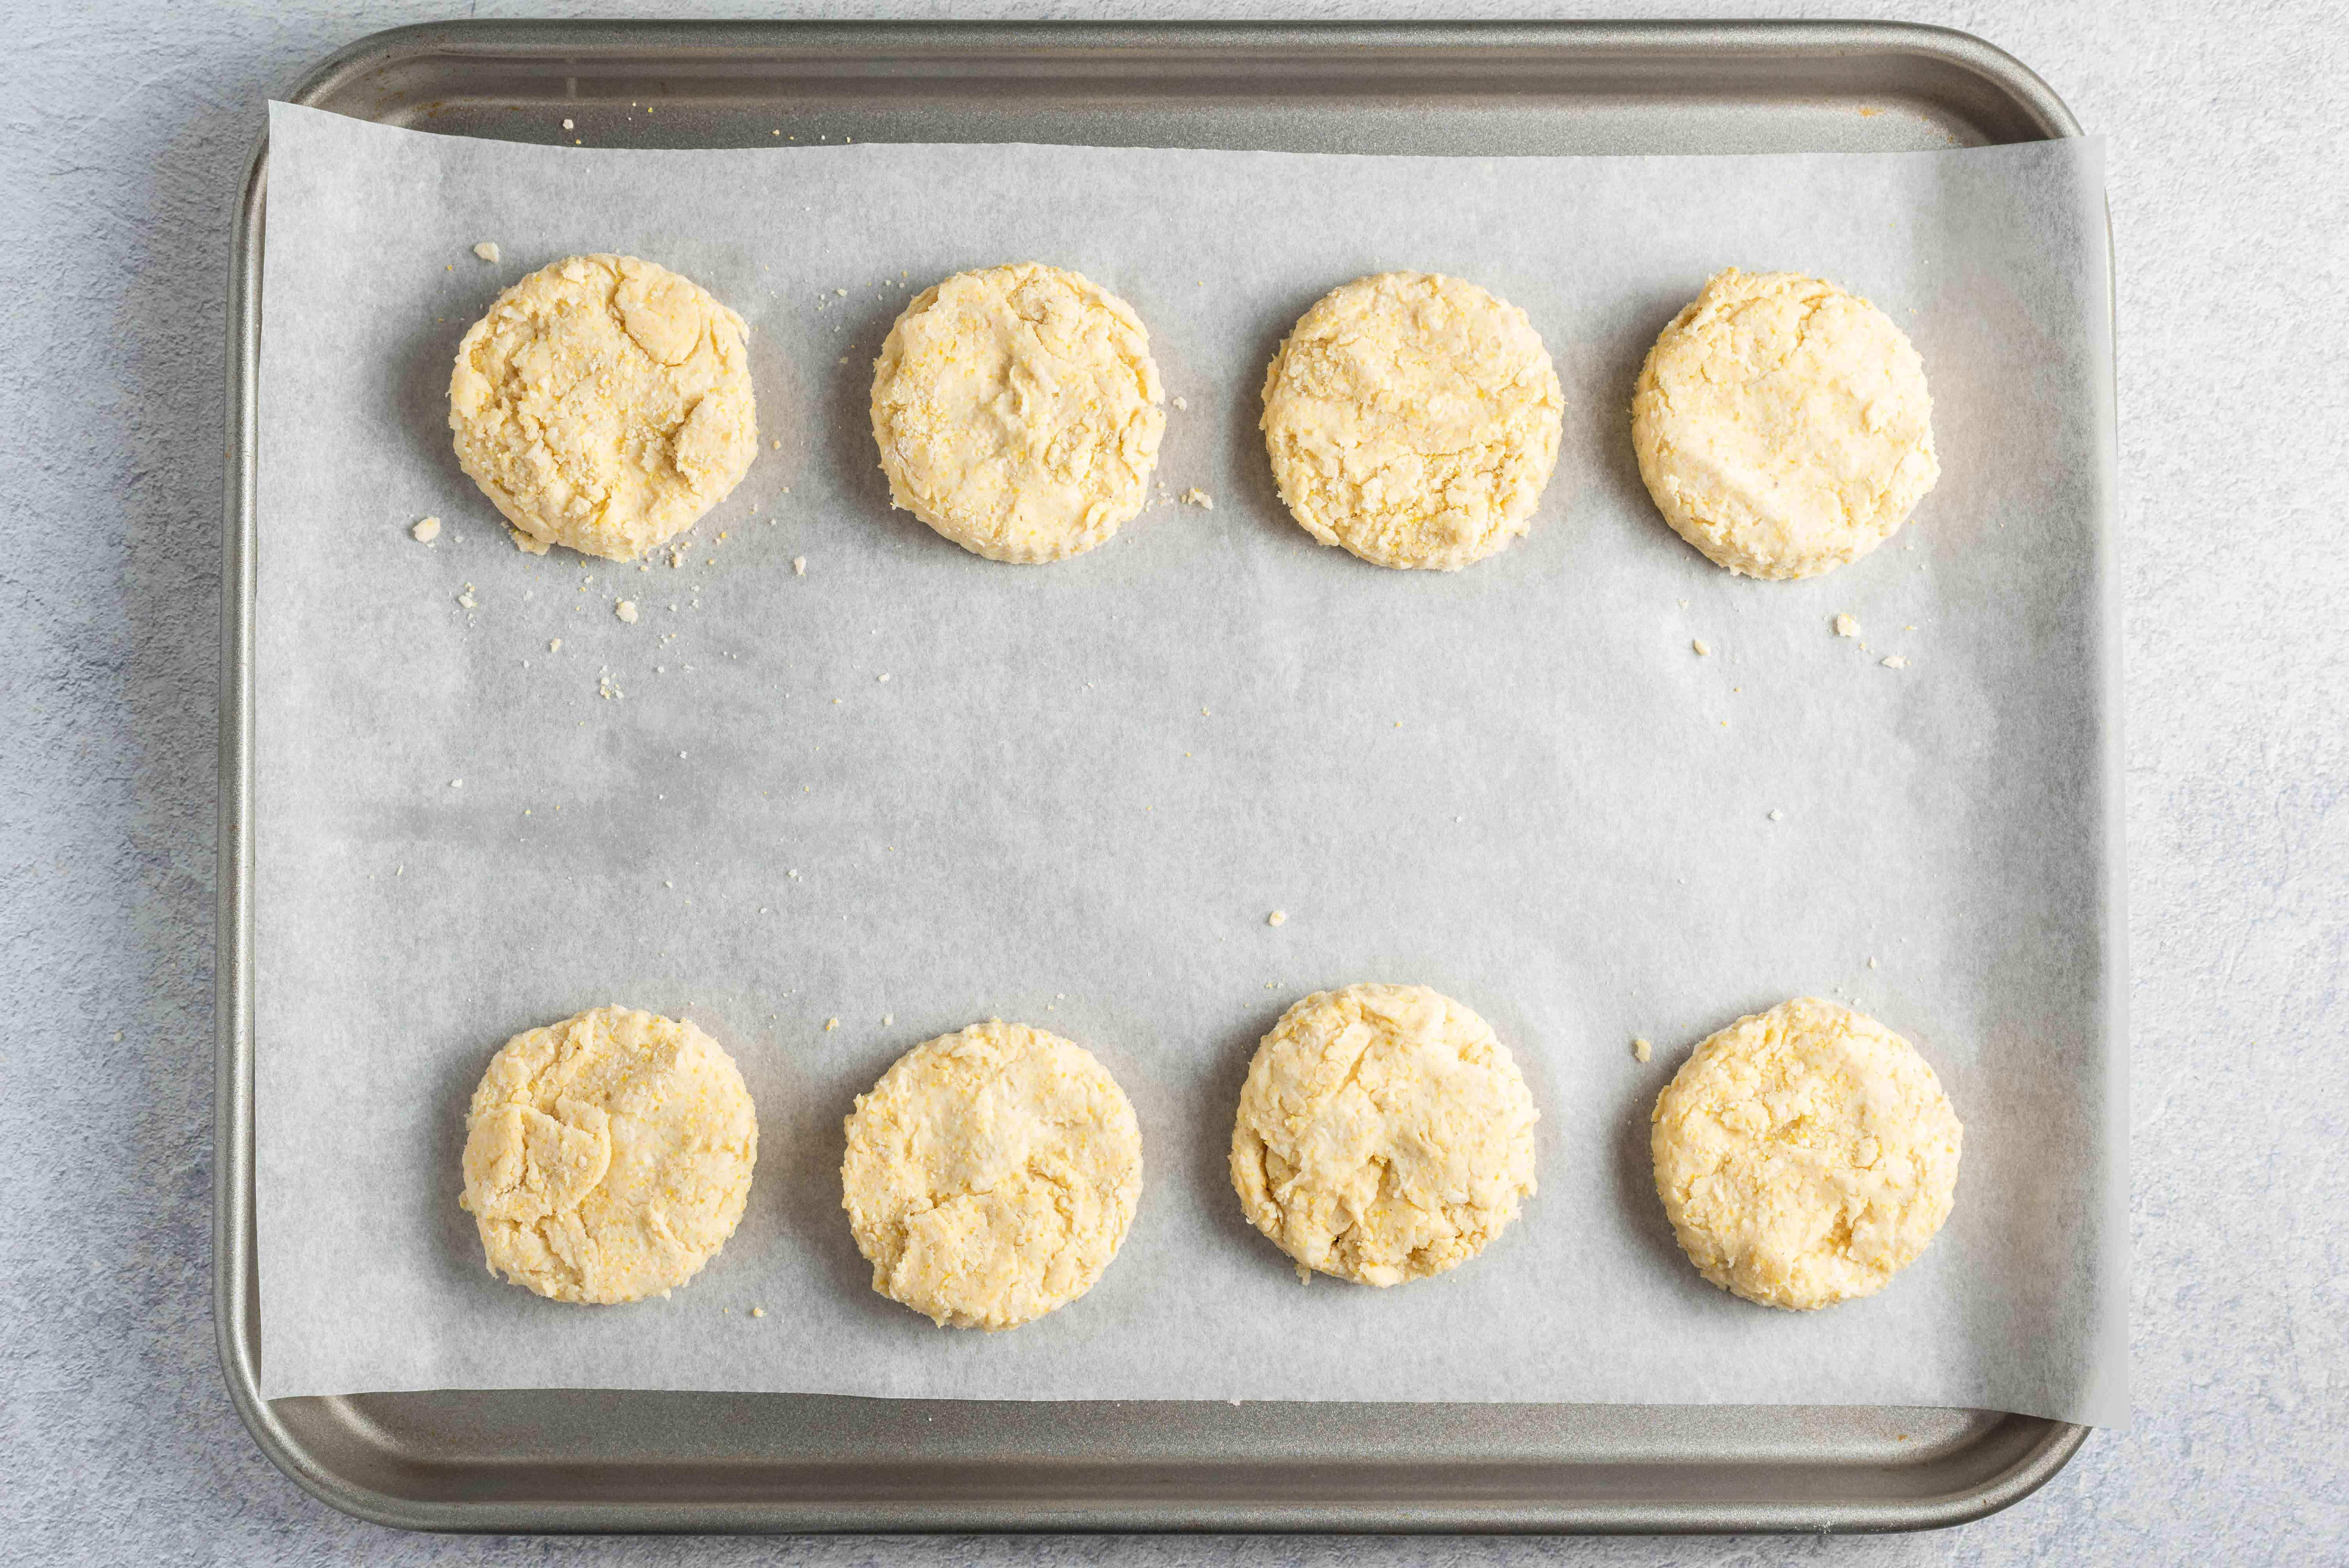 Place biscuit dough on prepared baking sheet